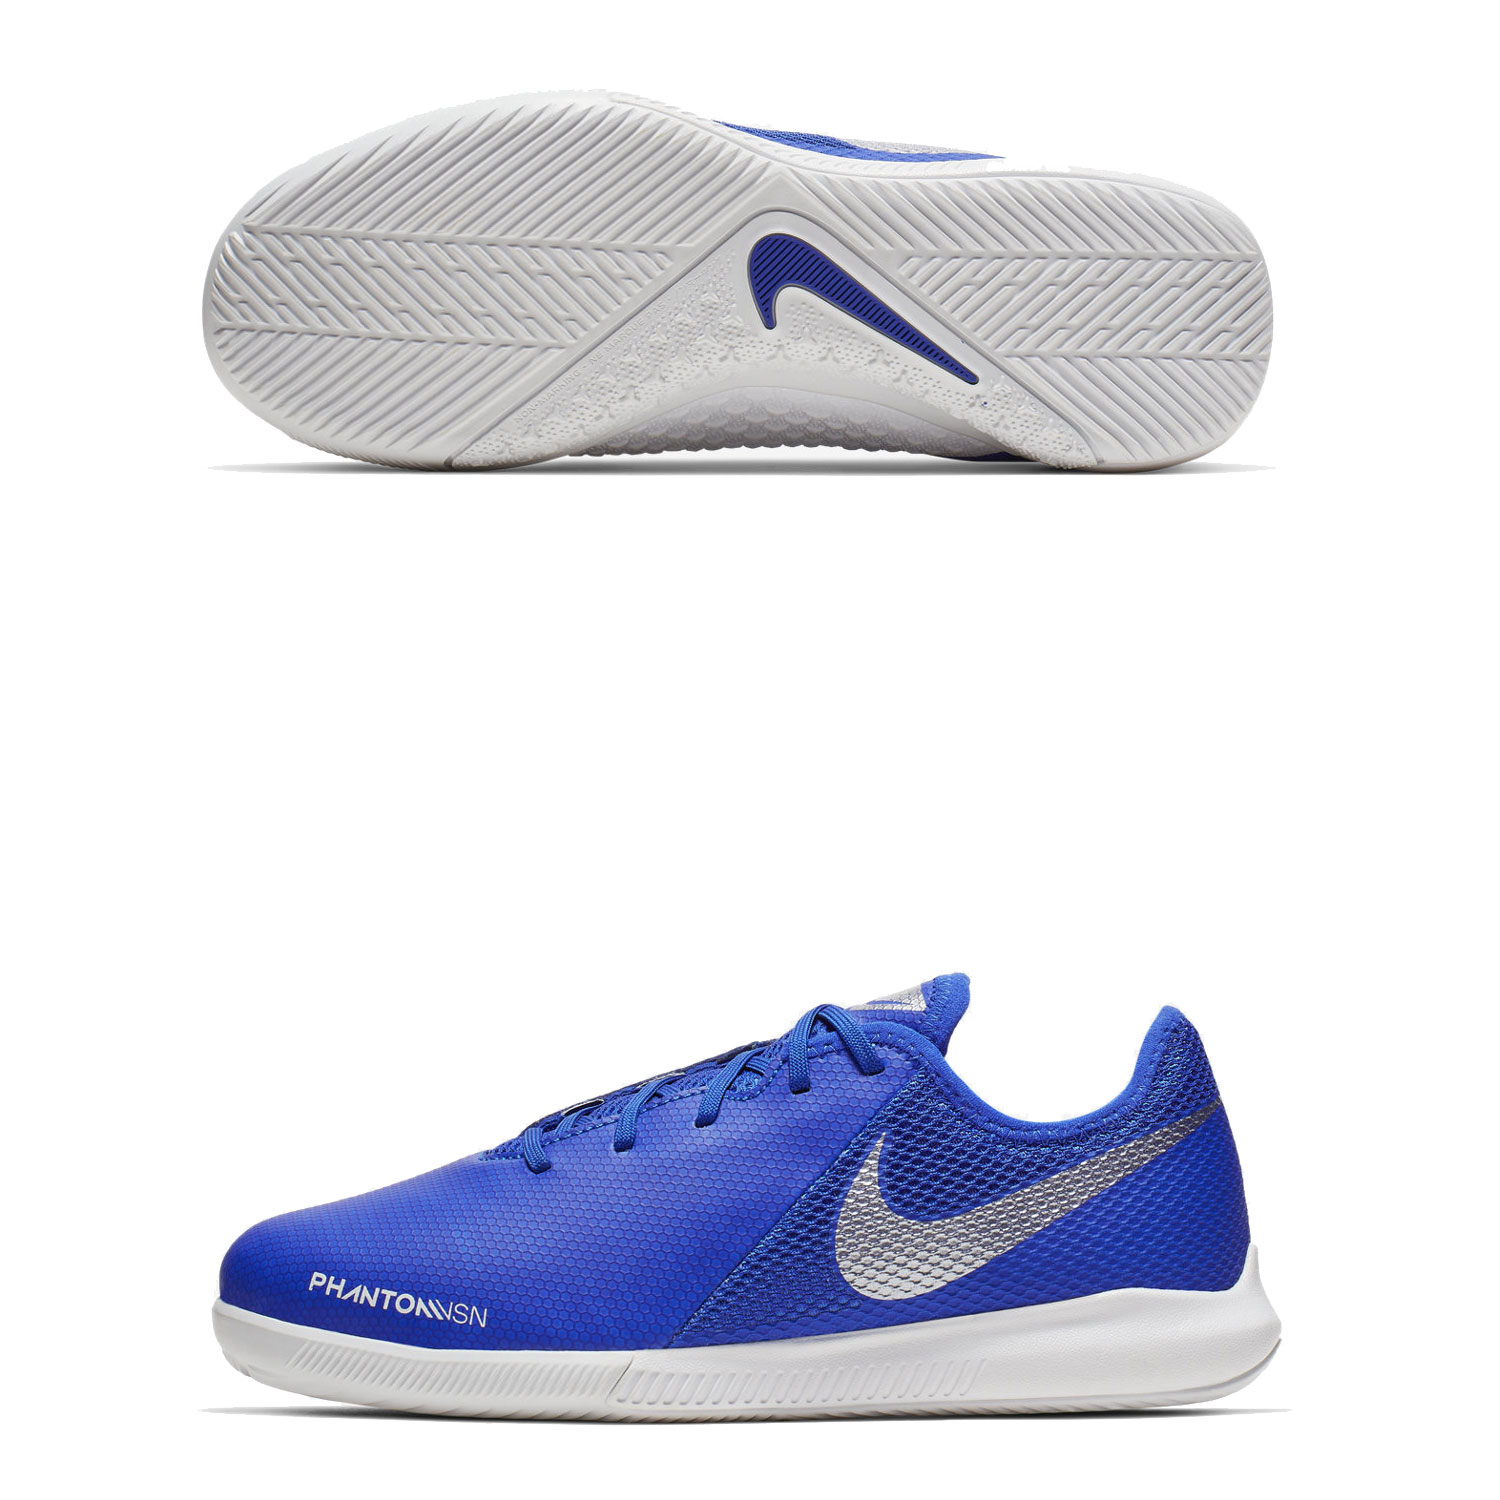 NIKE PHANTOM VSN ACADEMY IC AR4345-410 JR